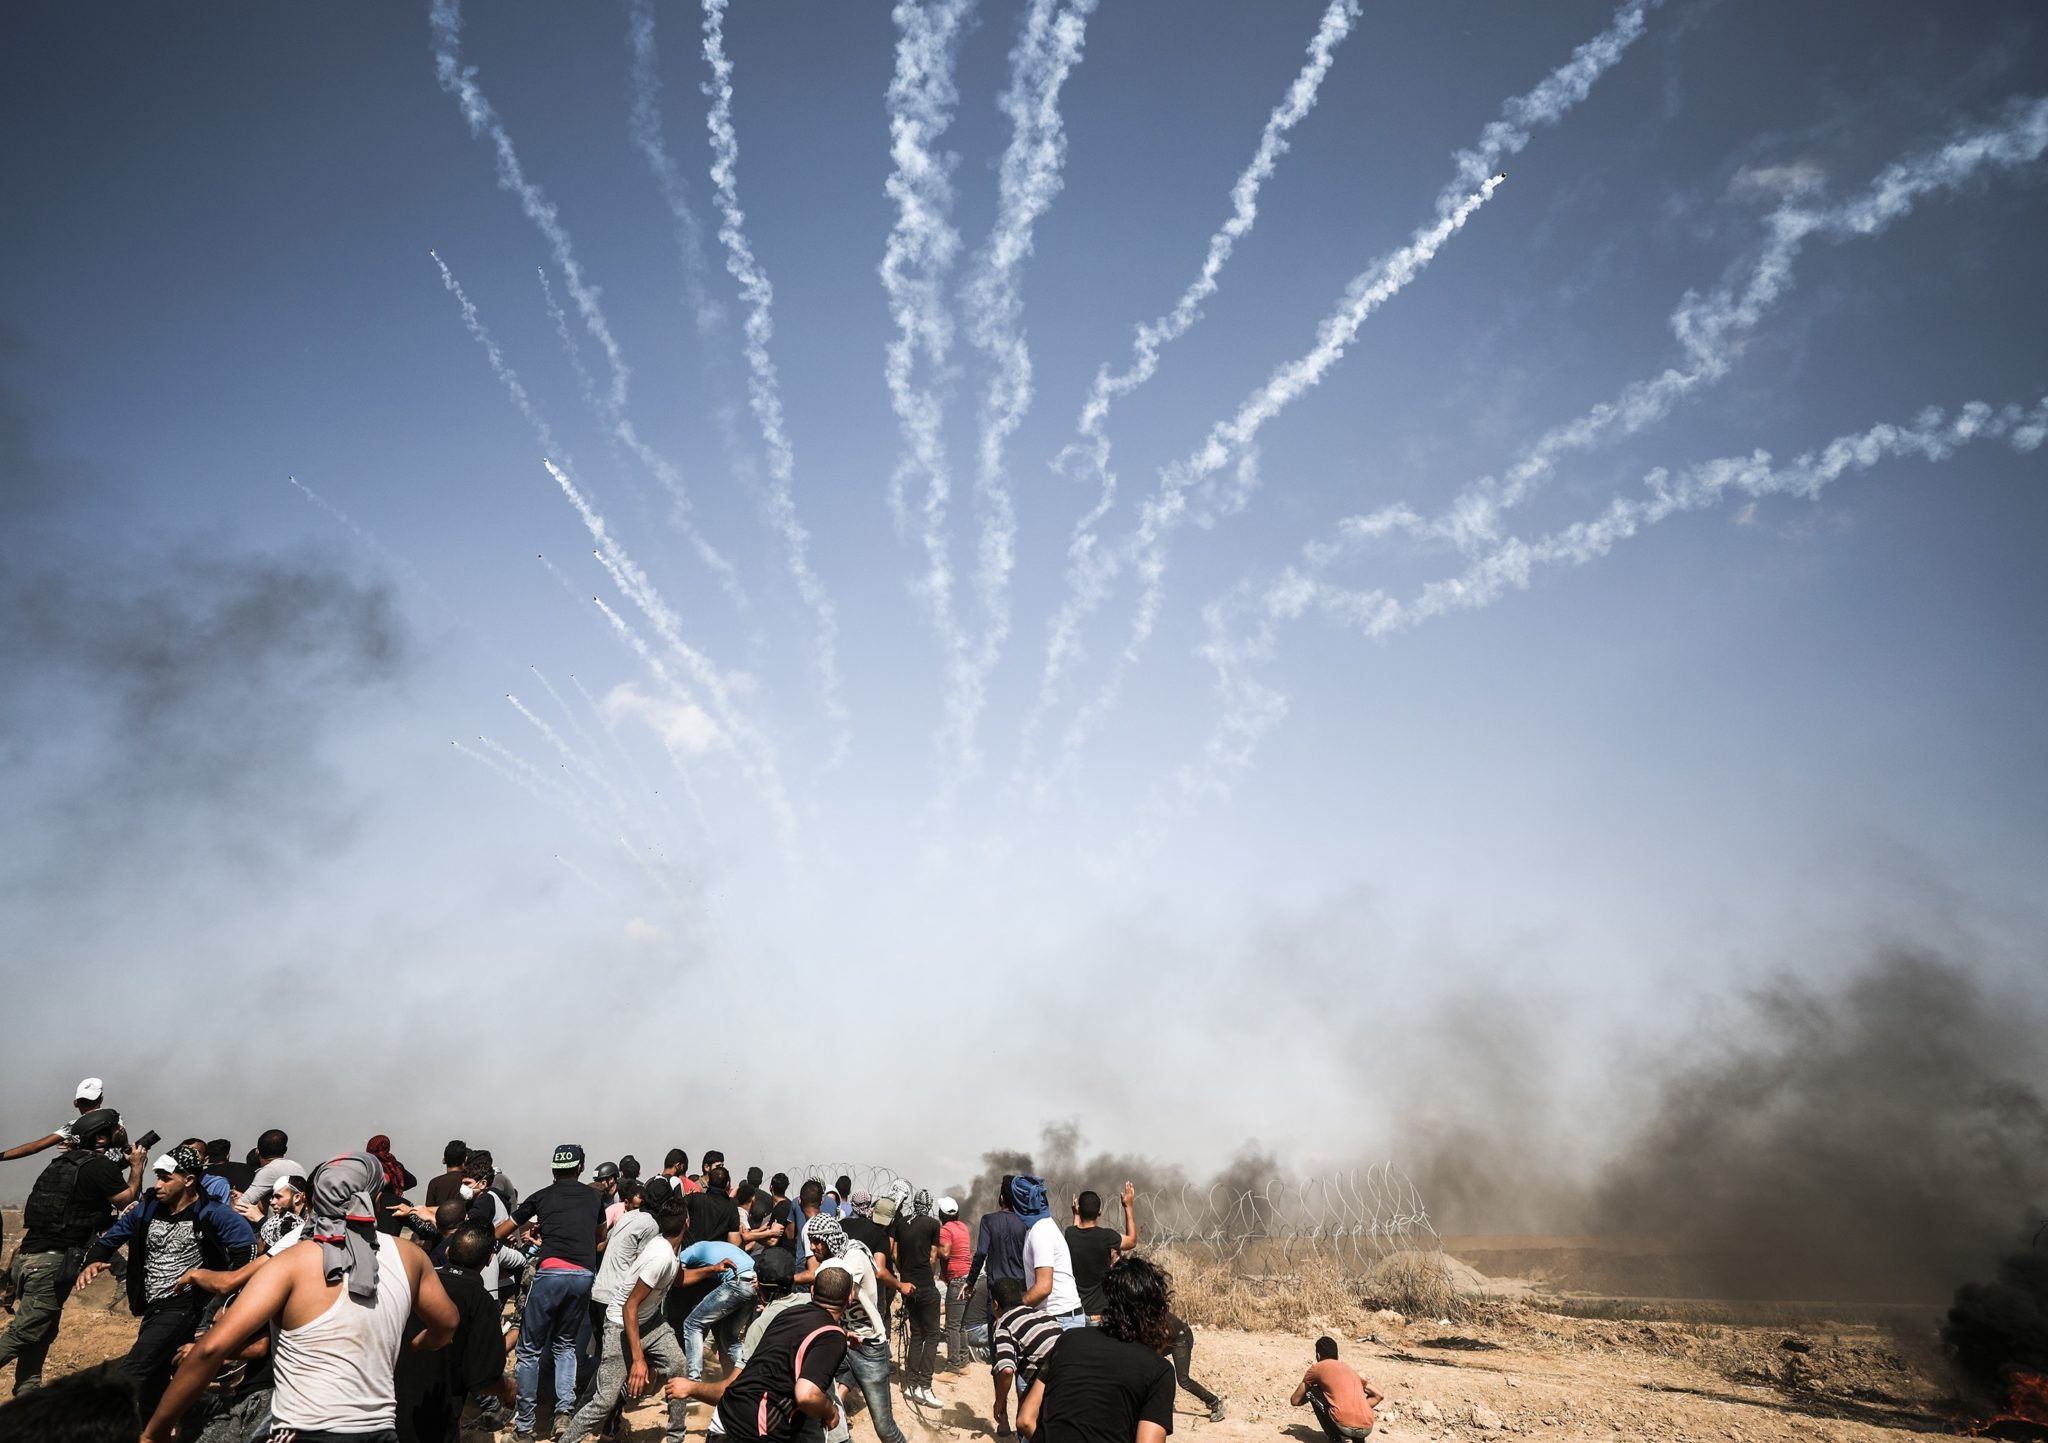 Israel/ OPT: Findings of UN inquiry into Gaza killings must pave way for justice over war crimes